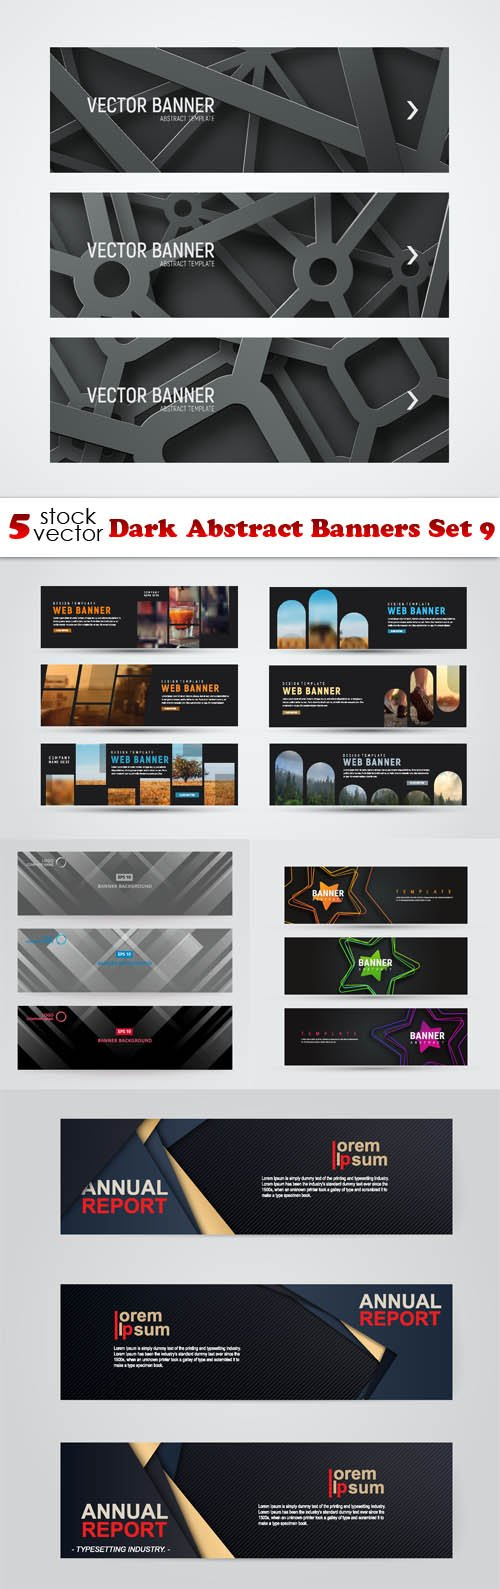 Vectors - Dark Abstract Banners Set 9